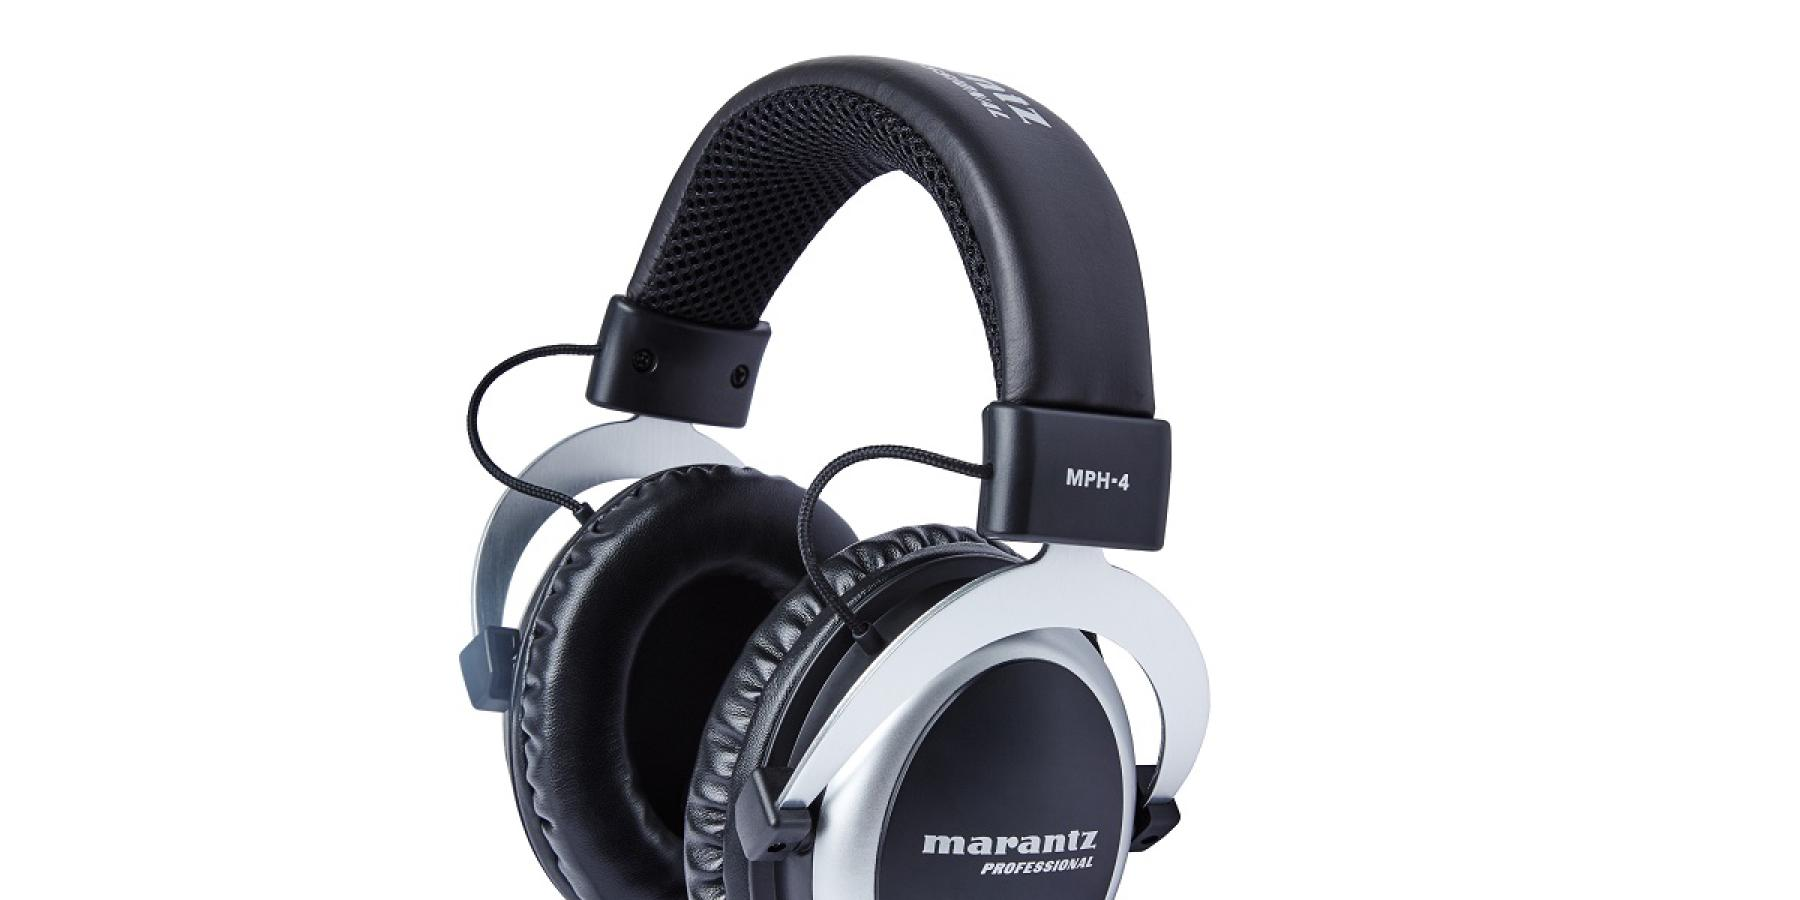 Promotional shot of the Marantz MPH-4 studio headphones, large over-the-ear style.